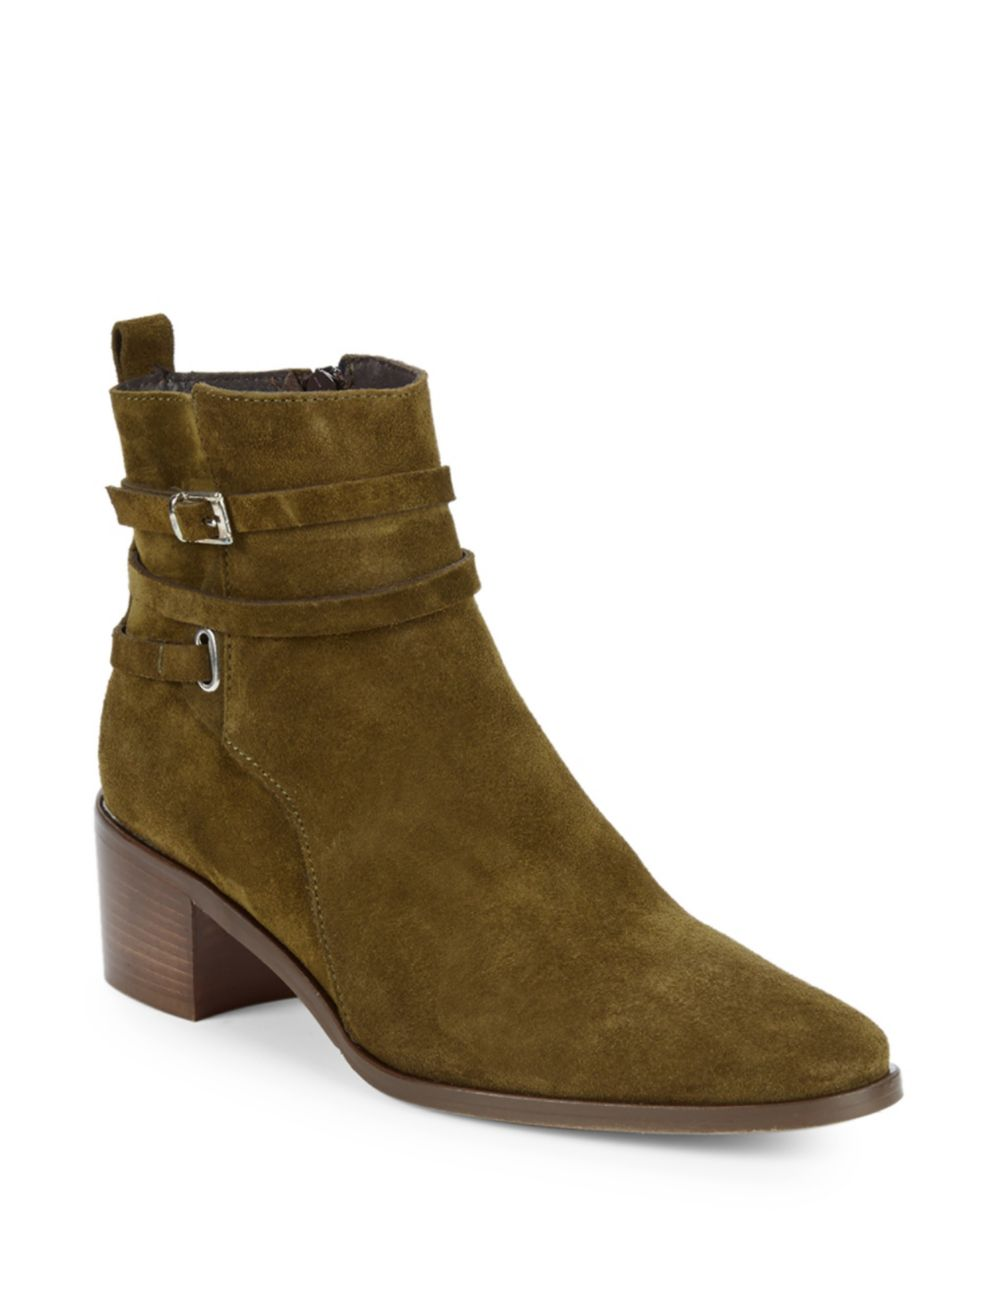 NIB Charles David Size 36 6 Women's Hunter Suede Ankle Boot in Khaki (Sage)  279